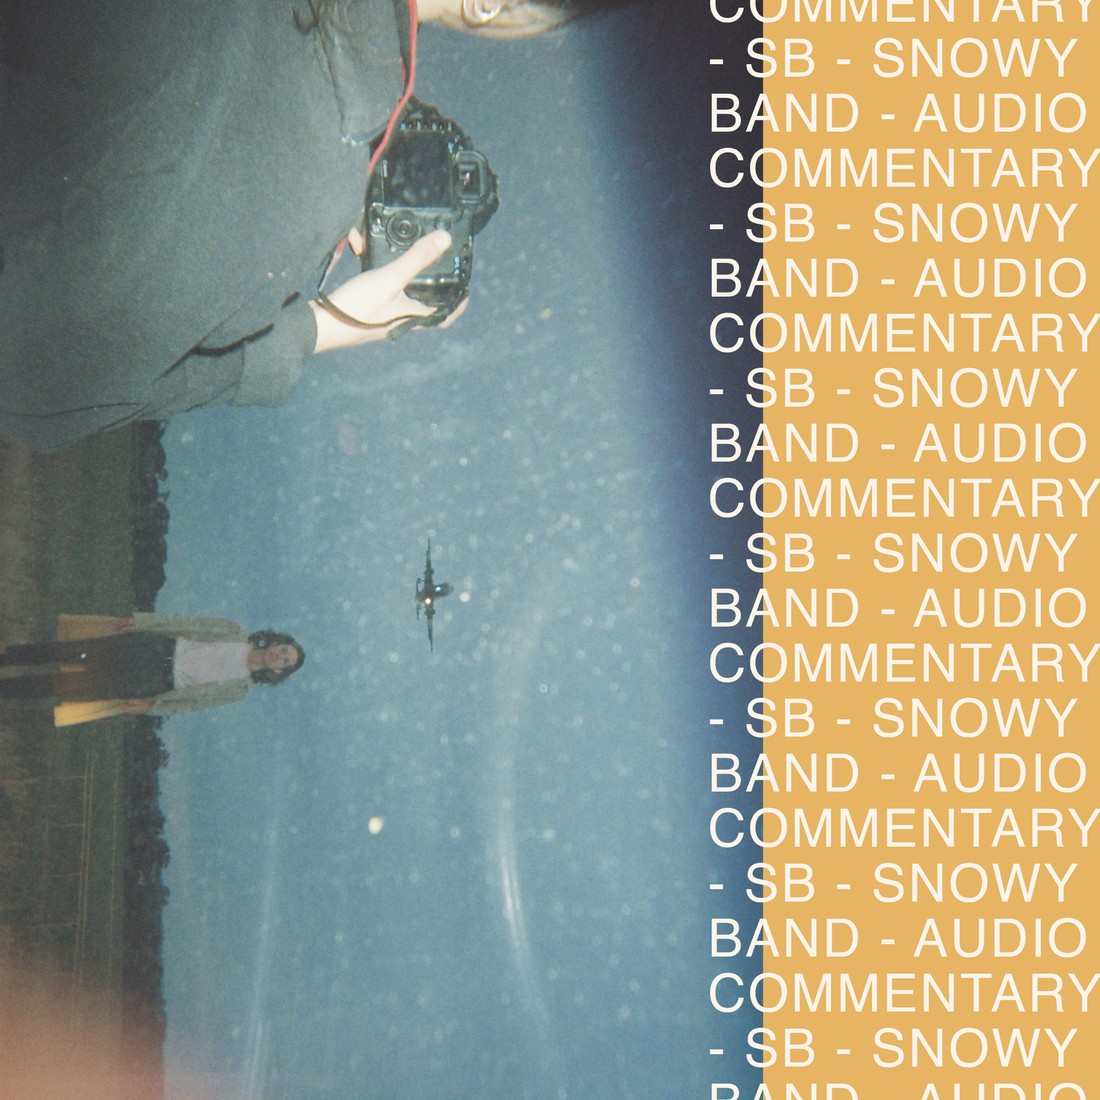 Snowy Band's 'Audio Commentary' album cover